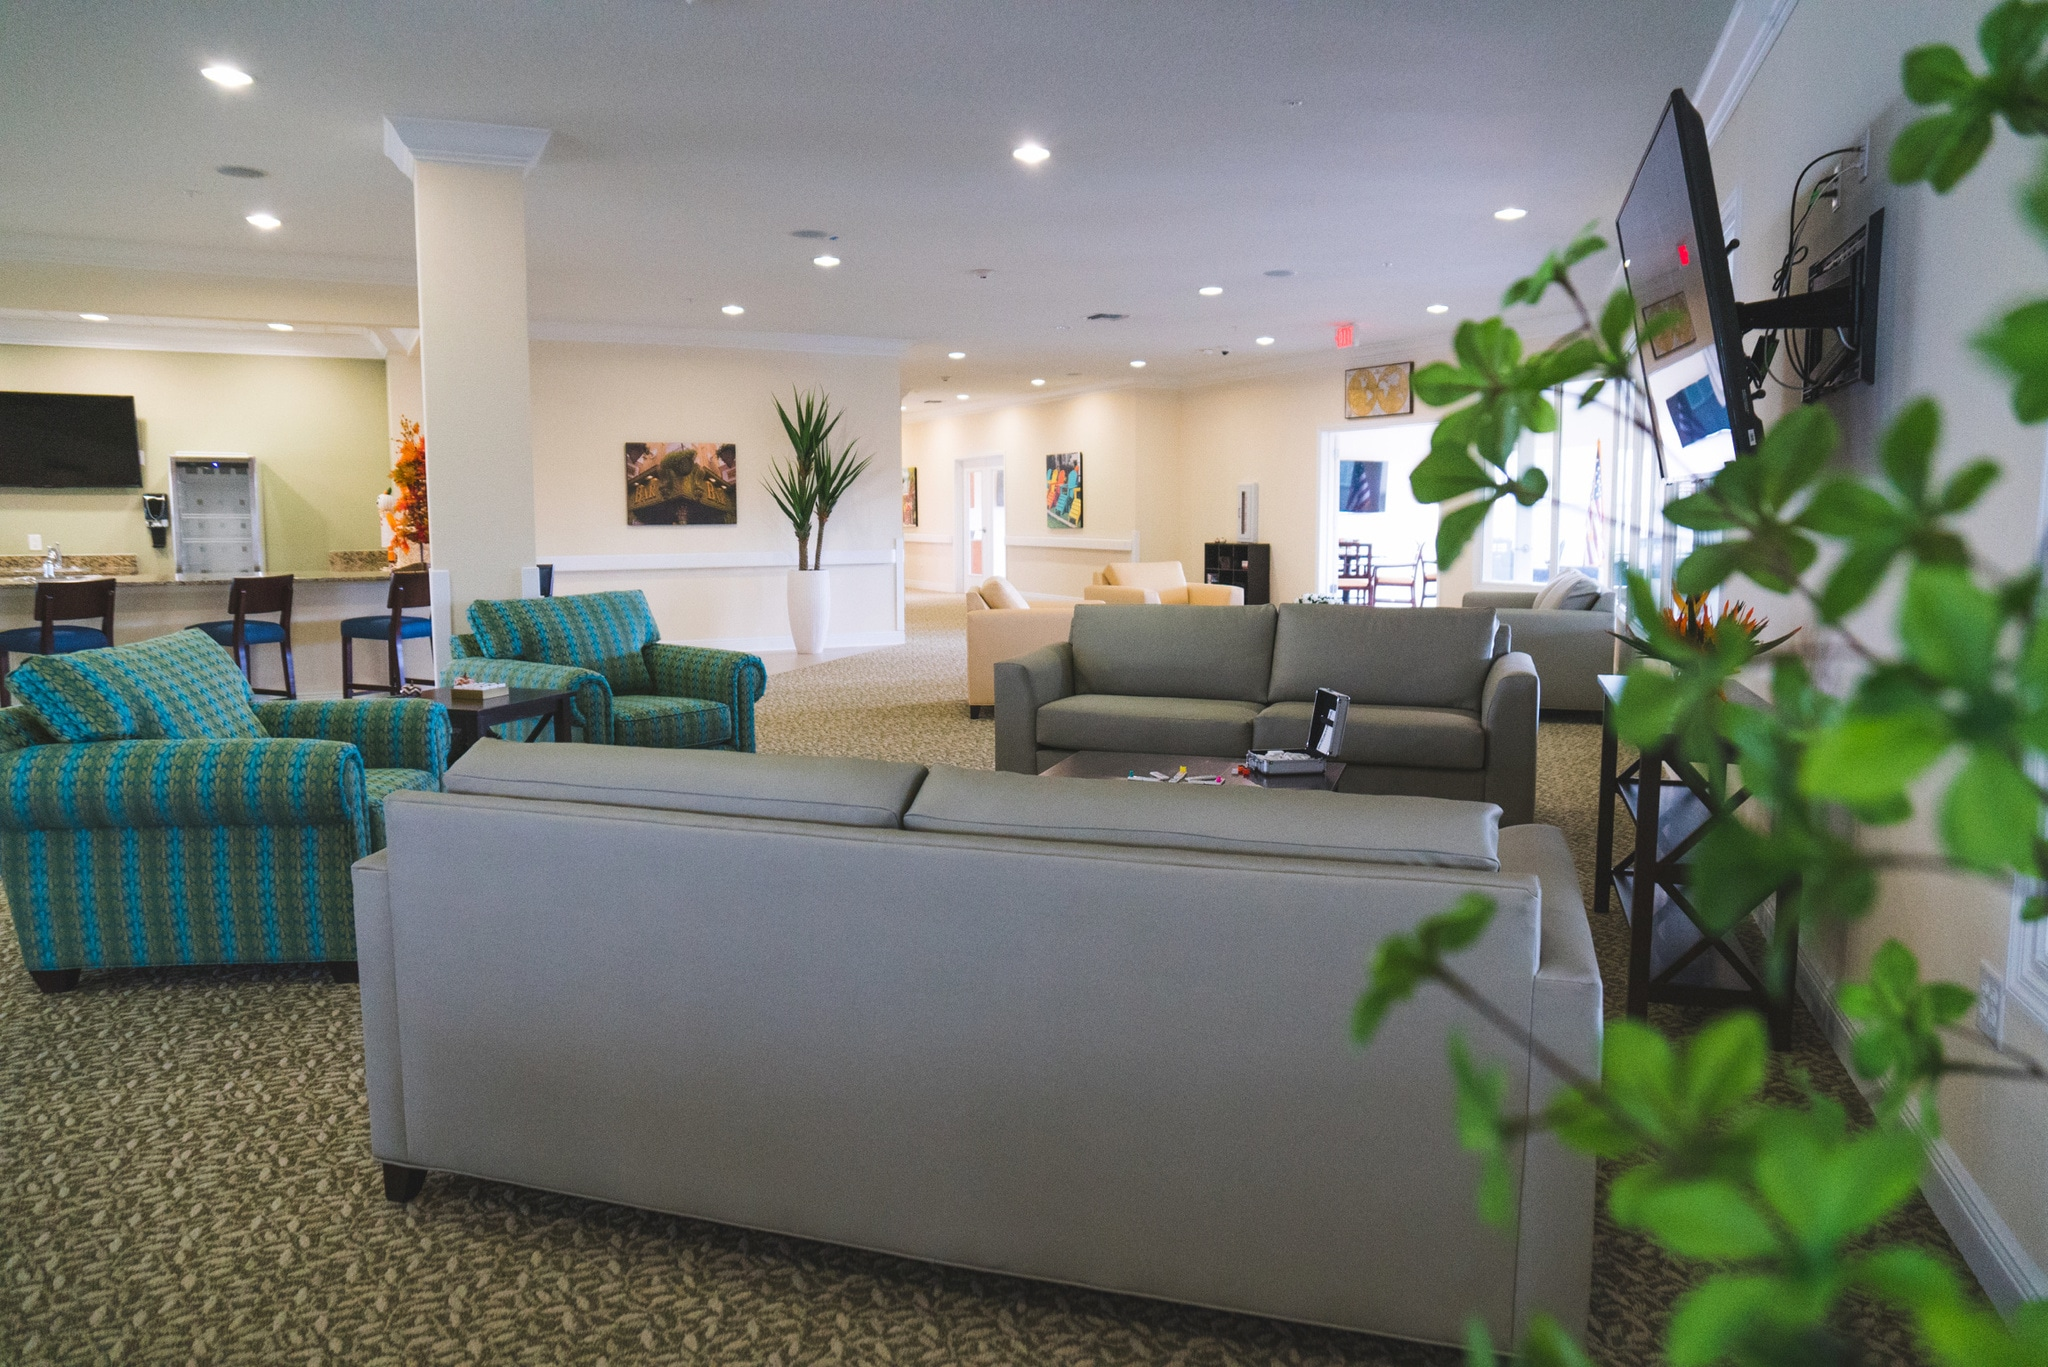 The lounge at Angels Senior Living at Sarasota gives our assisted living residents the chance to relax and enjoy the scenery.